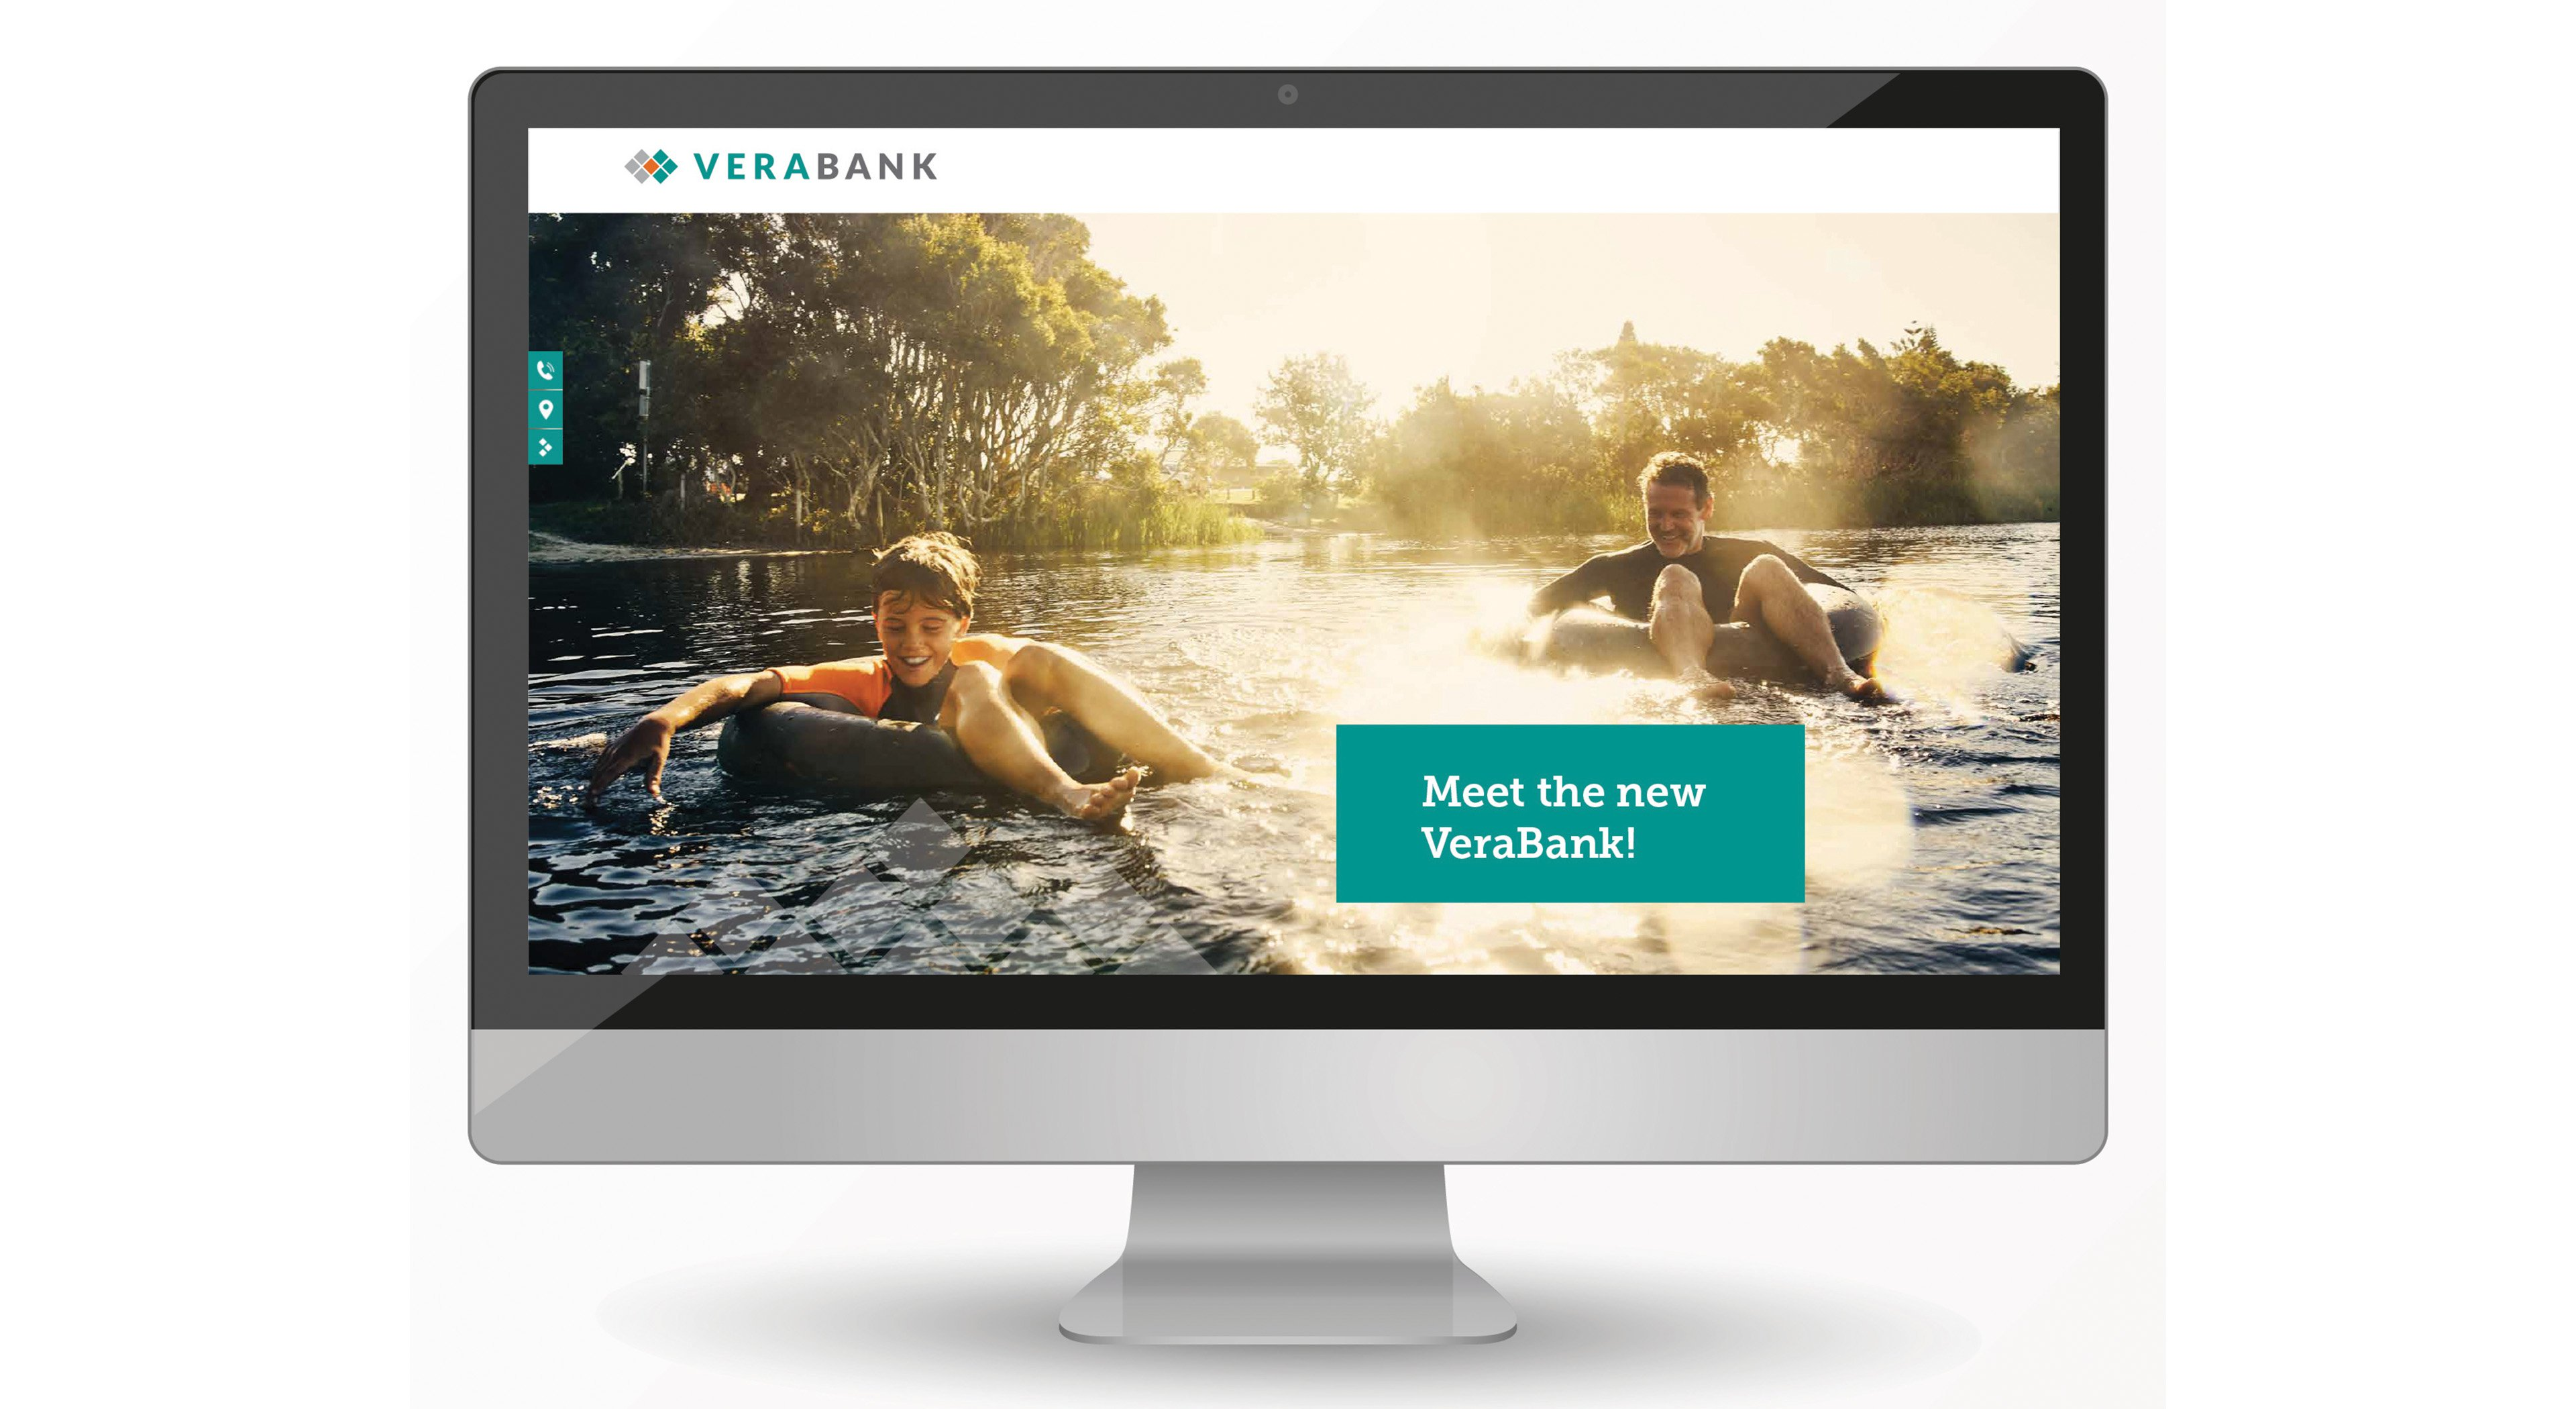 New_Name_Deep_Roots_in_Texas-VeraBank-Landing_Page.jpg